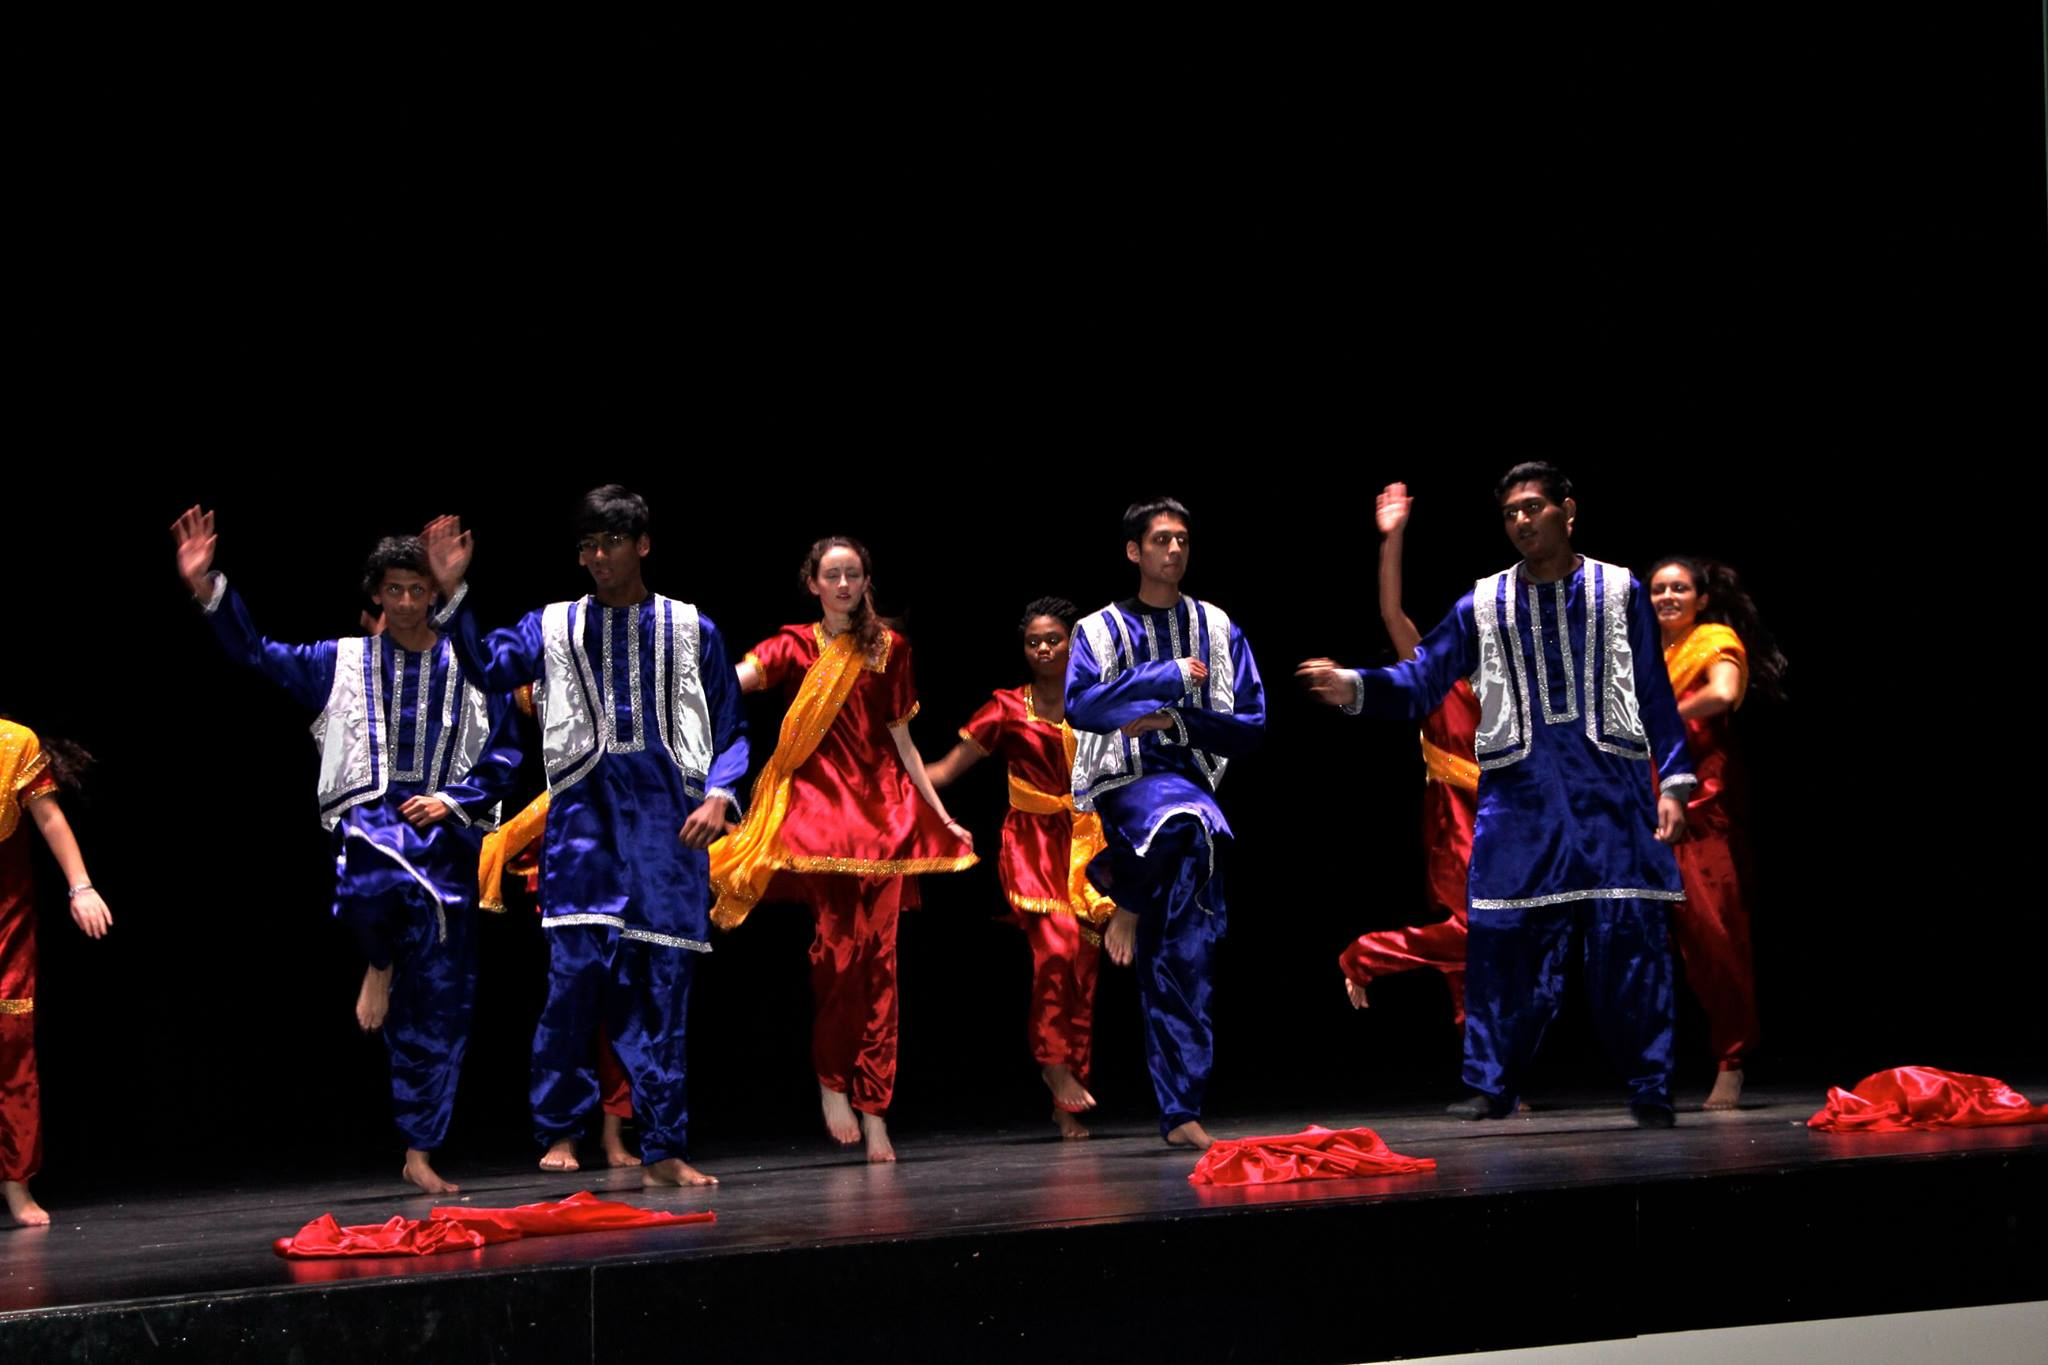 Huron ISA at 2017 Multicultural Dance Performance